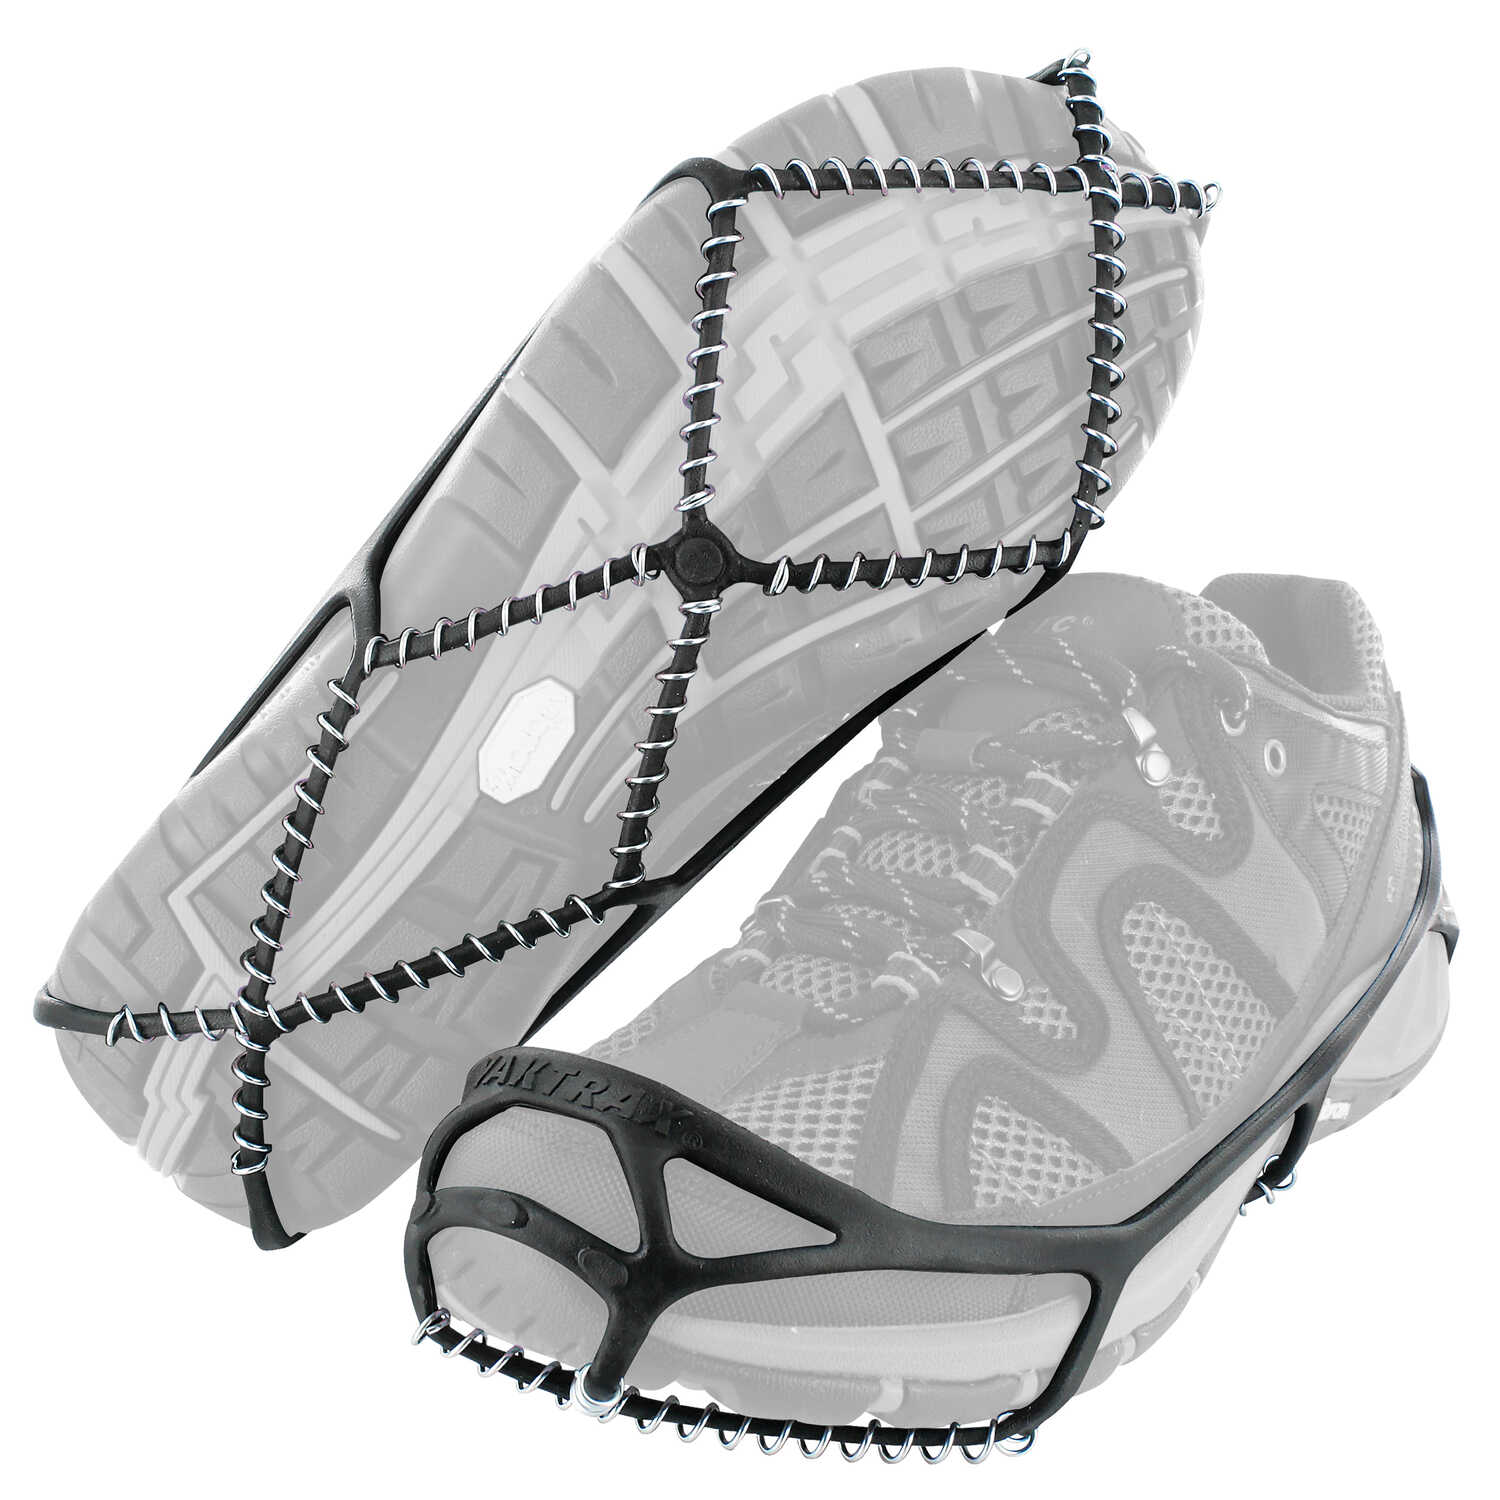 Yaktrax  WALK  Unisex  Poly Elastomer Blend/Steel  Traction Device  W 2.5-6/M 1-4.5  Waterproof 1 pa